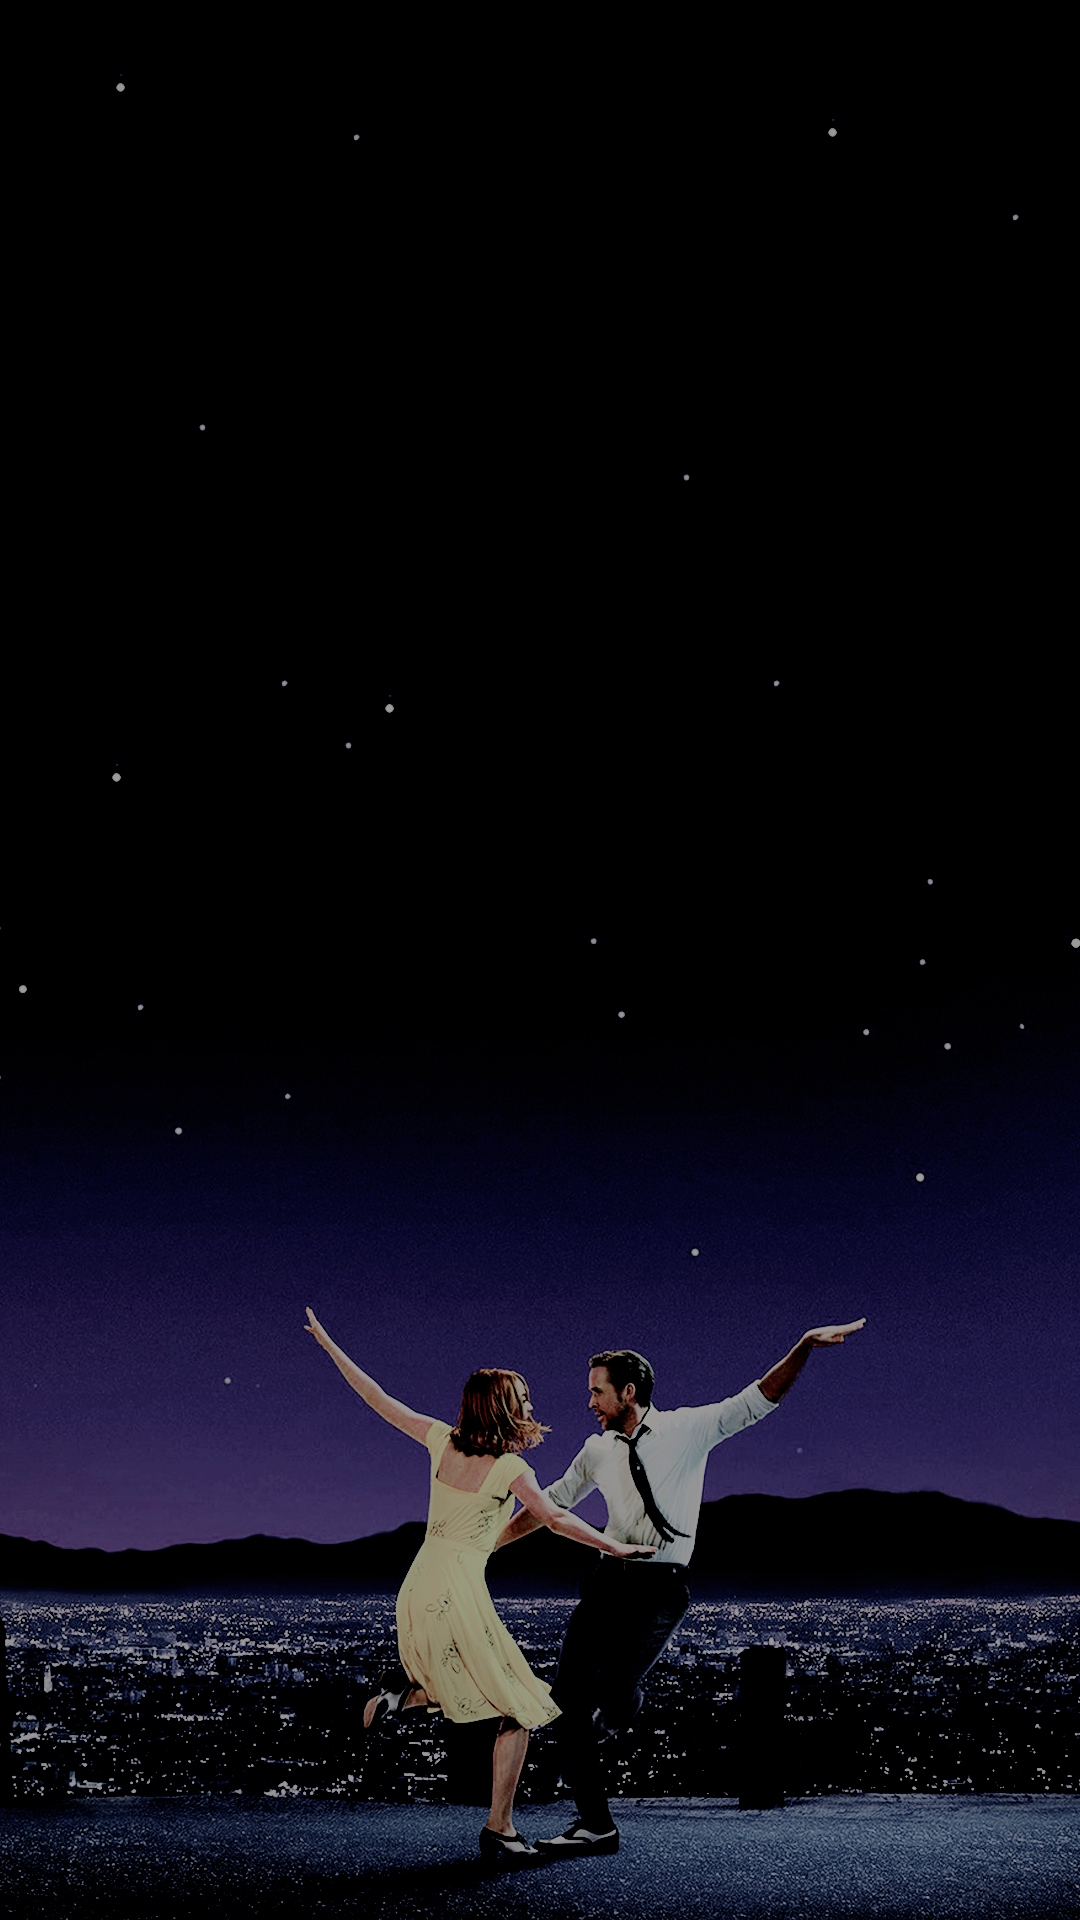 La La Land Wallpapers Requested Please Like Or Reblog If Saving Using Do Not Repost Or Claim As Your Own Iphone 7 Wallpapers La La Land Movie Wallpapers